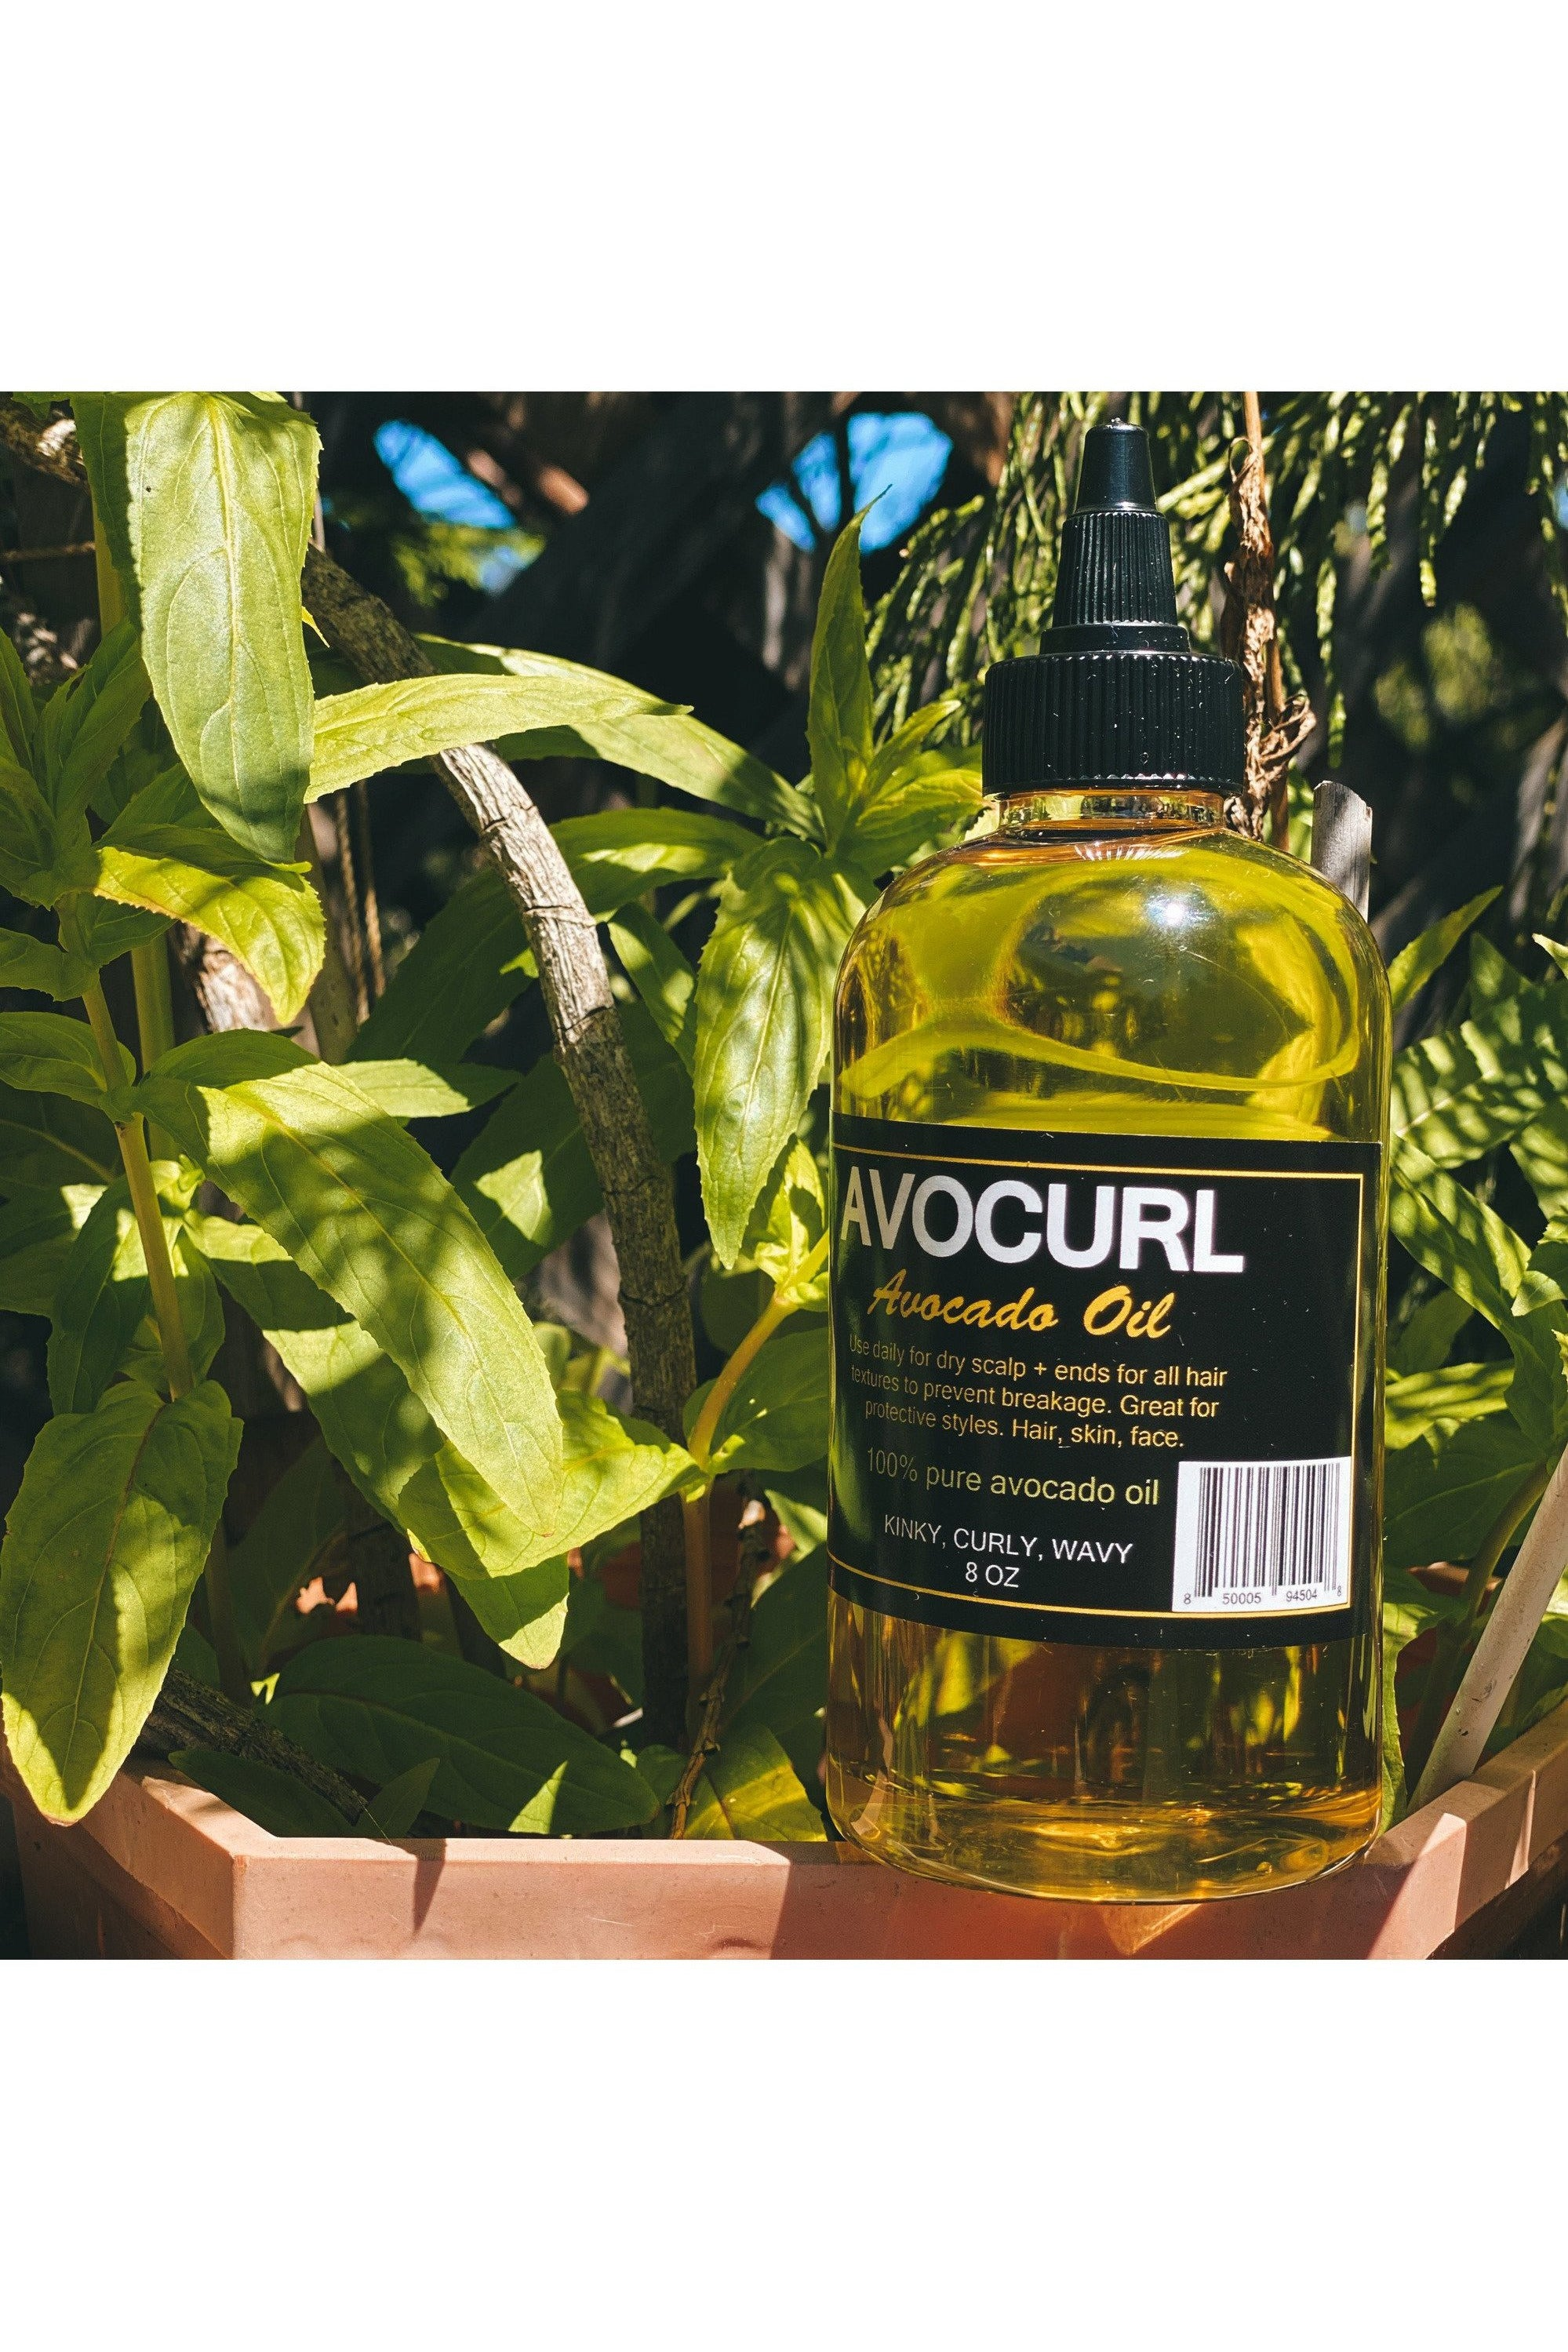 AvoCurl Avocado Oil, 8 oz